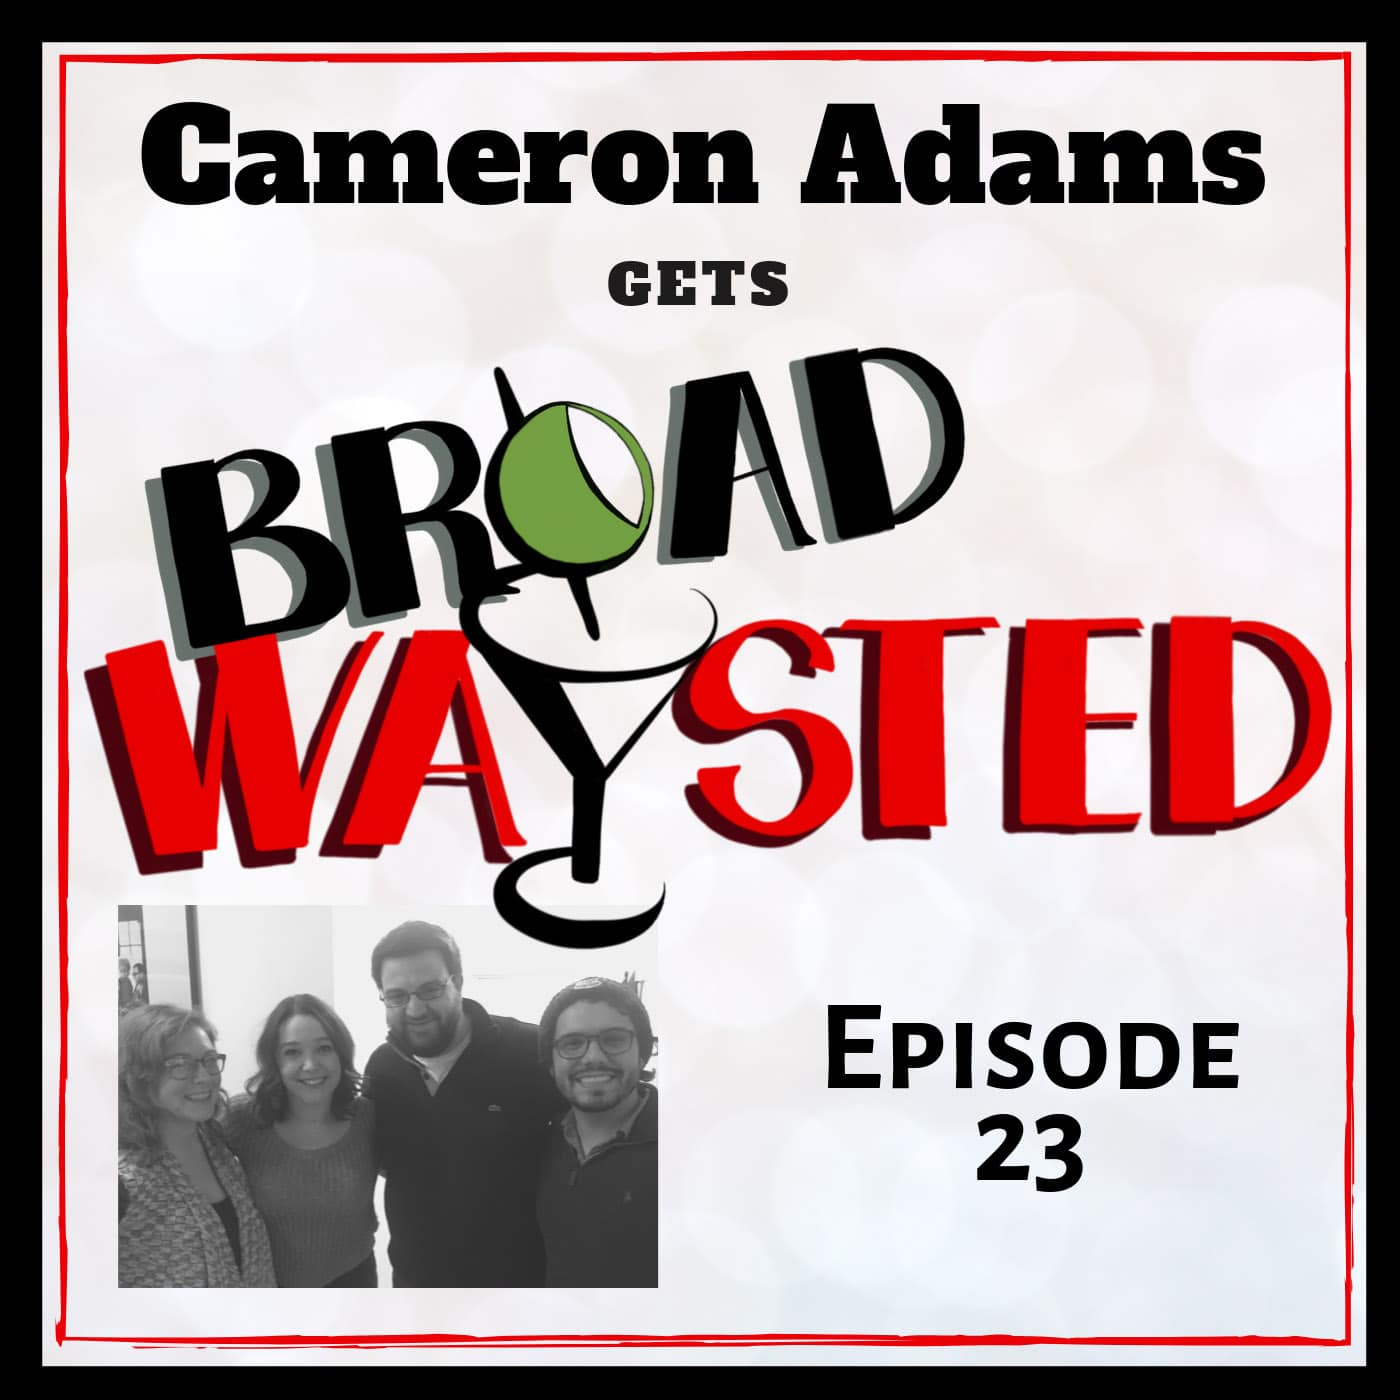 Broadwaysted Ep 23 Cameron Adams